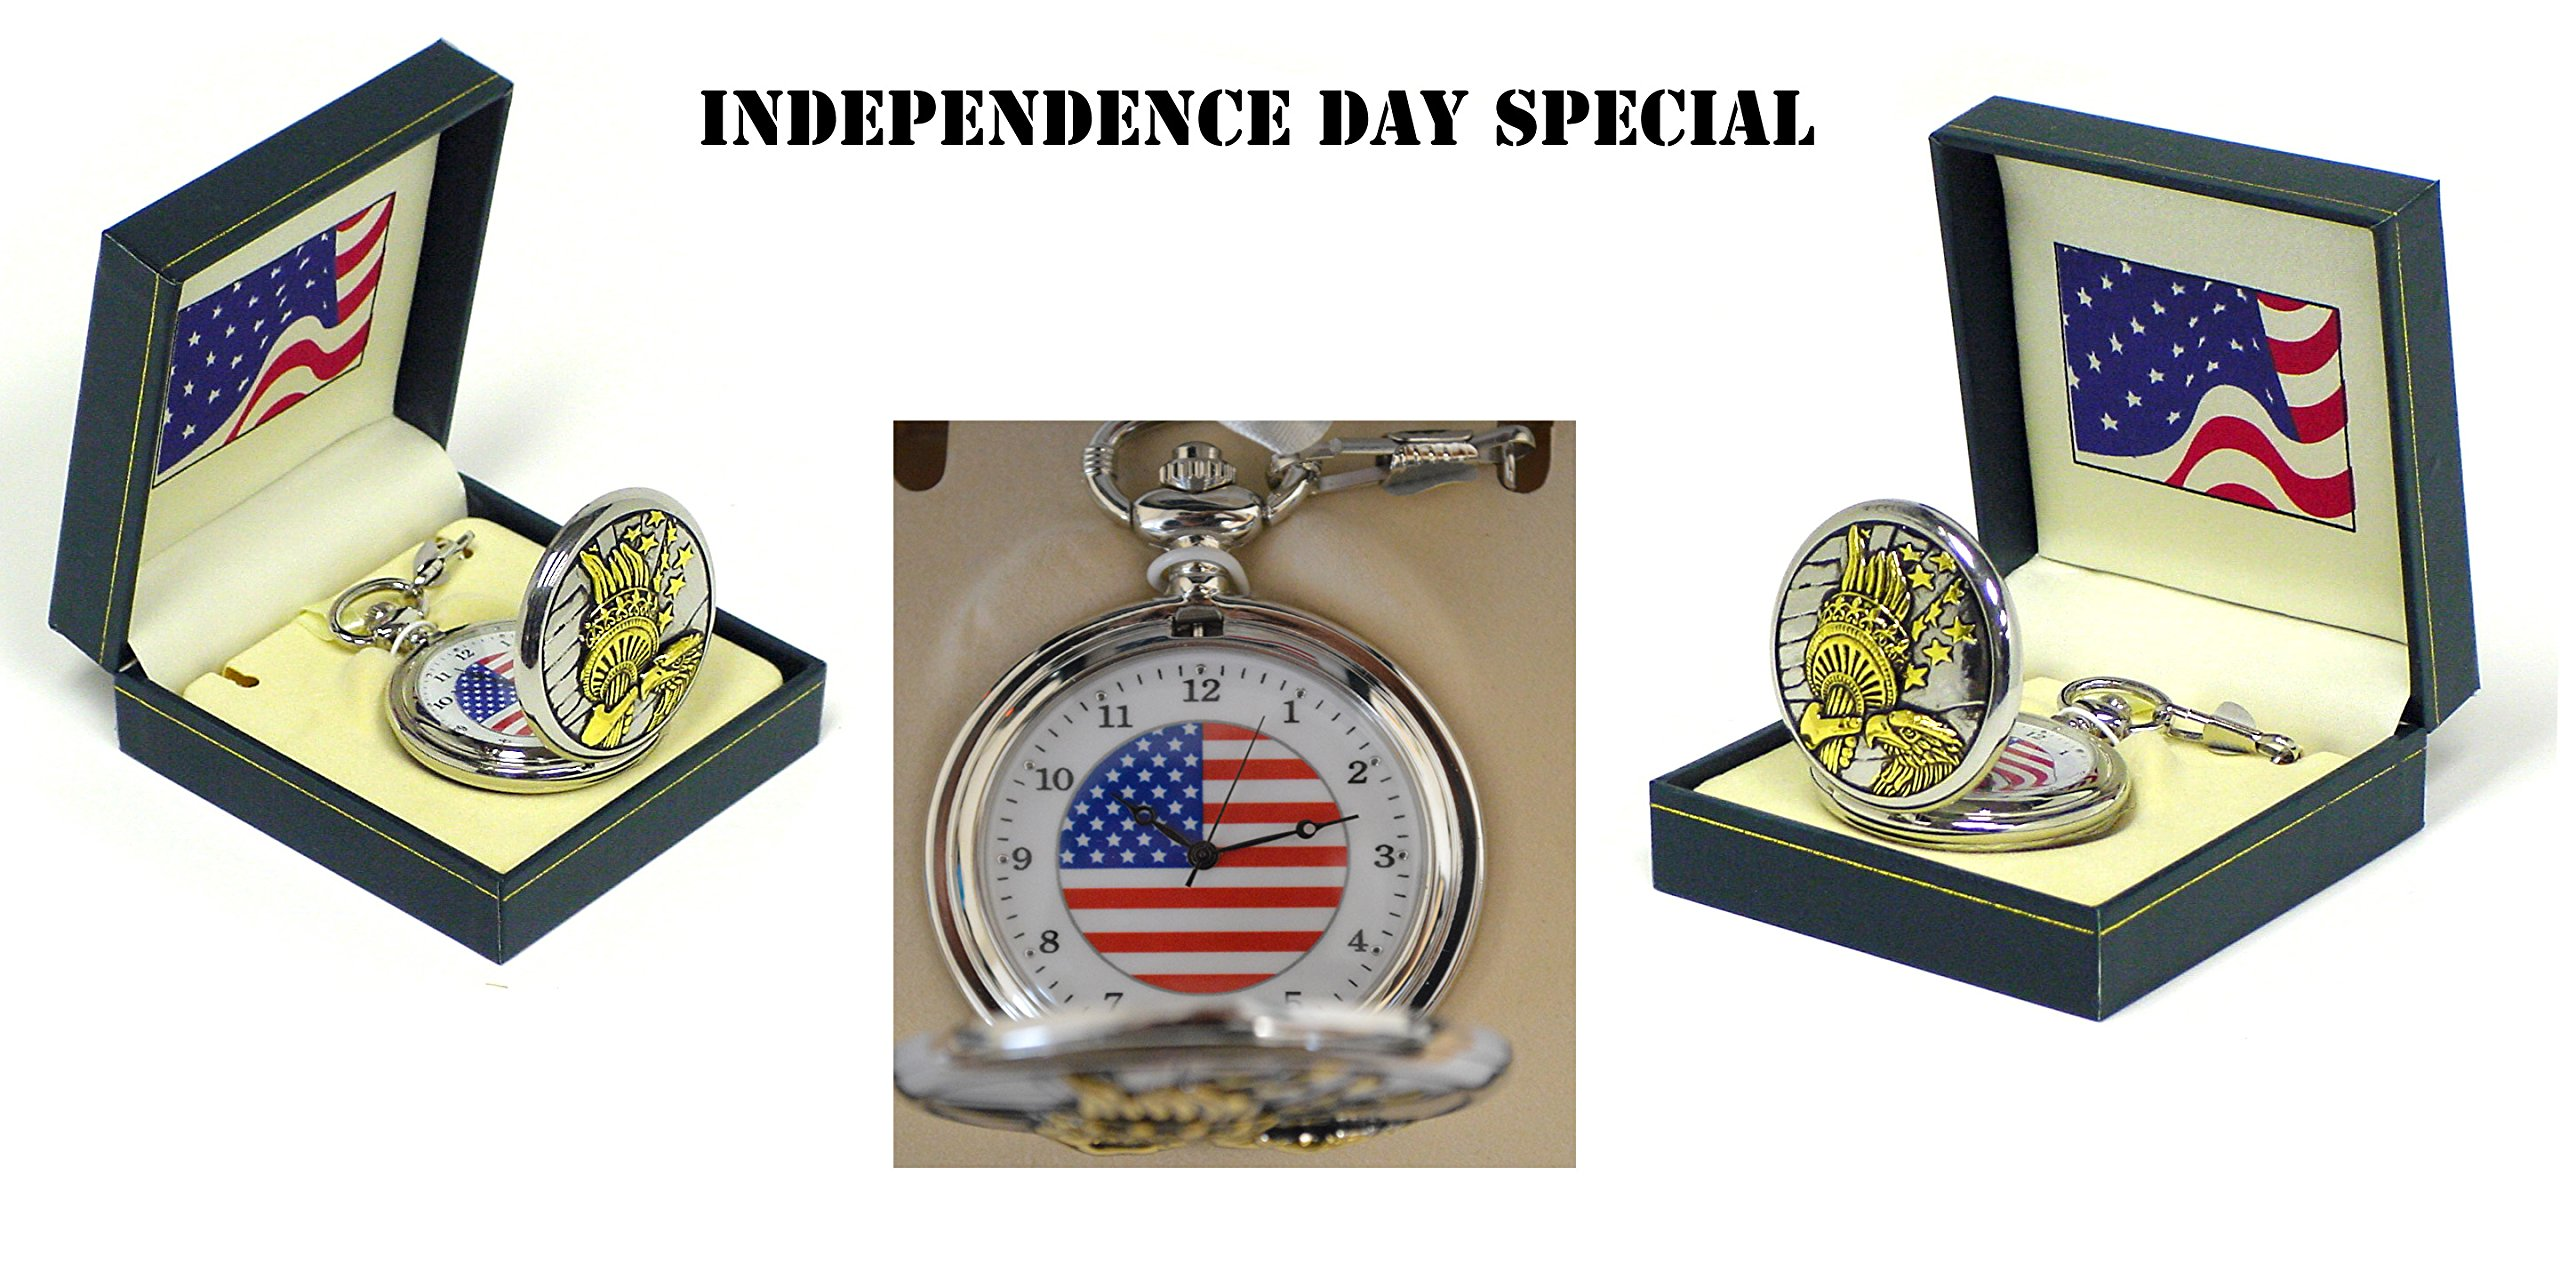 Independence Day Special - Liberty Pocket Watch